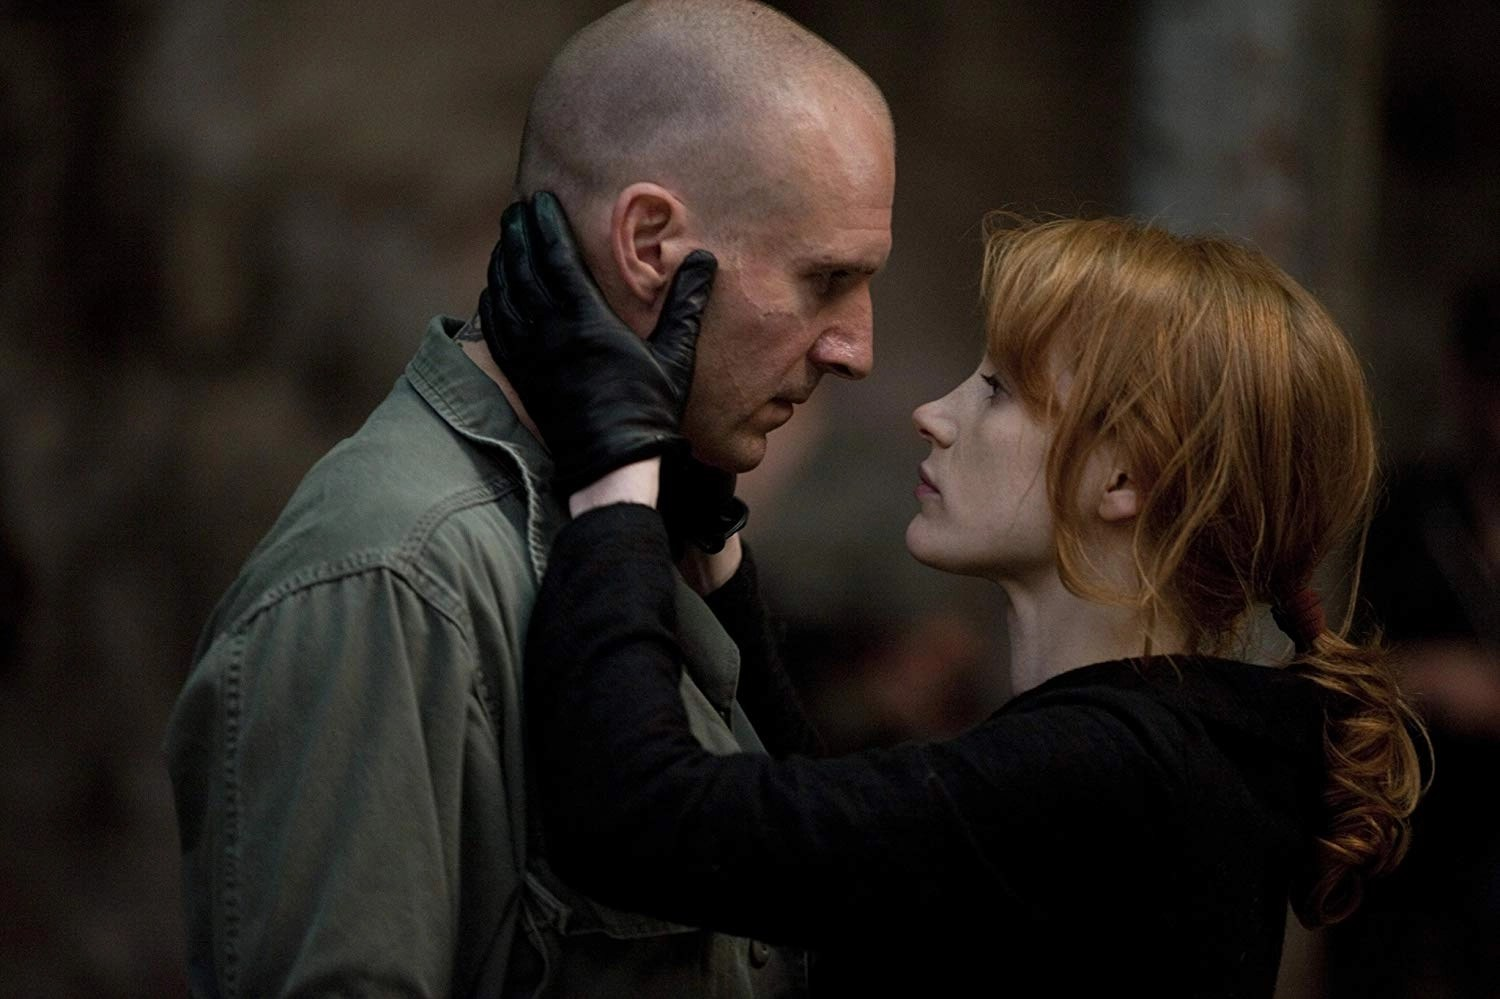 Ralph Fiennes and Jessica Chastain in Coriolanus (2011)